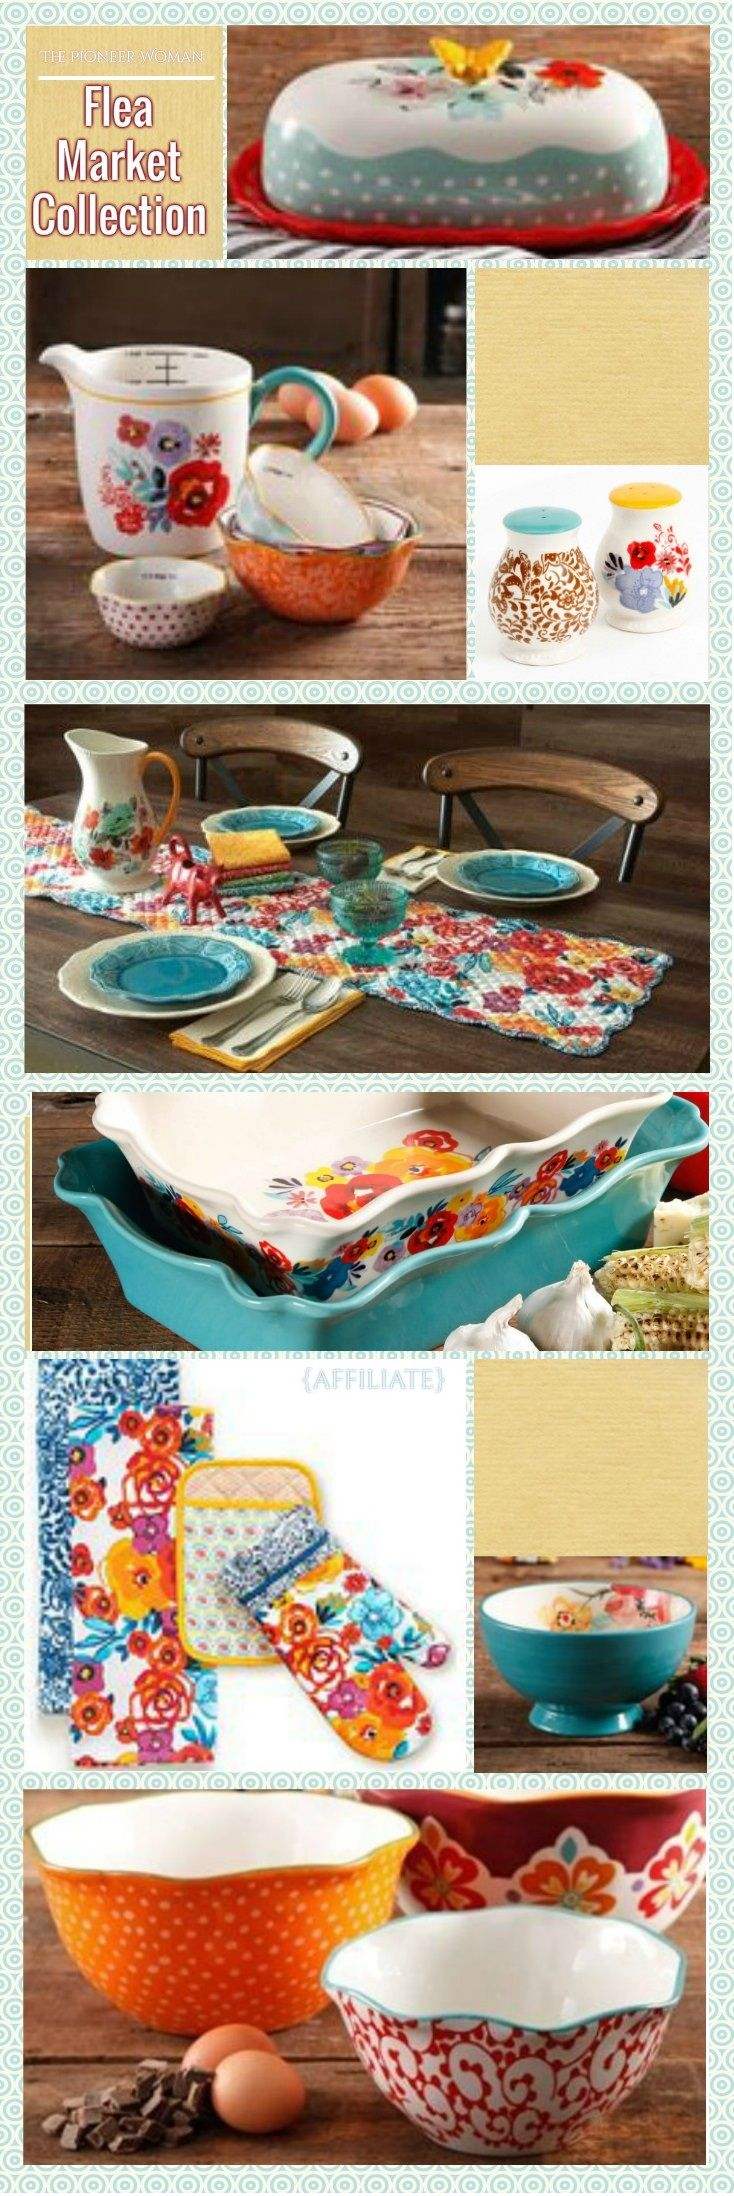 Vintage inspired and vibrant in color, spice up your home with the Pioneer Woman Flea Market collection!